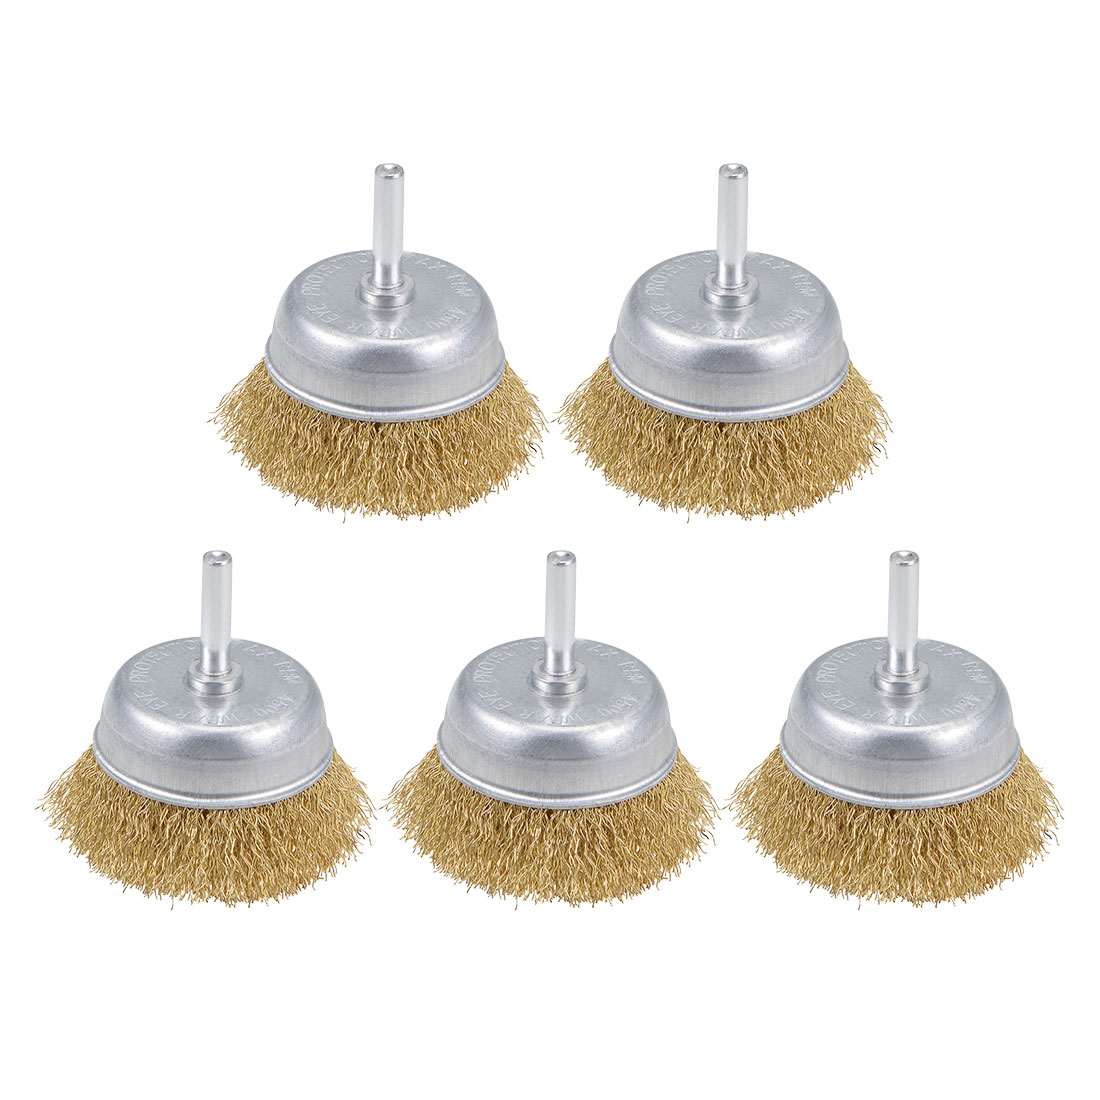 2-1/2-Inch Wire Cup Brush Brass Plated Crimped Steel with 1/4-inch Shank 5 Pcs